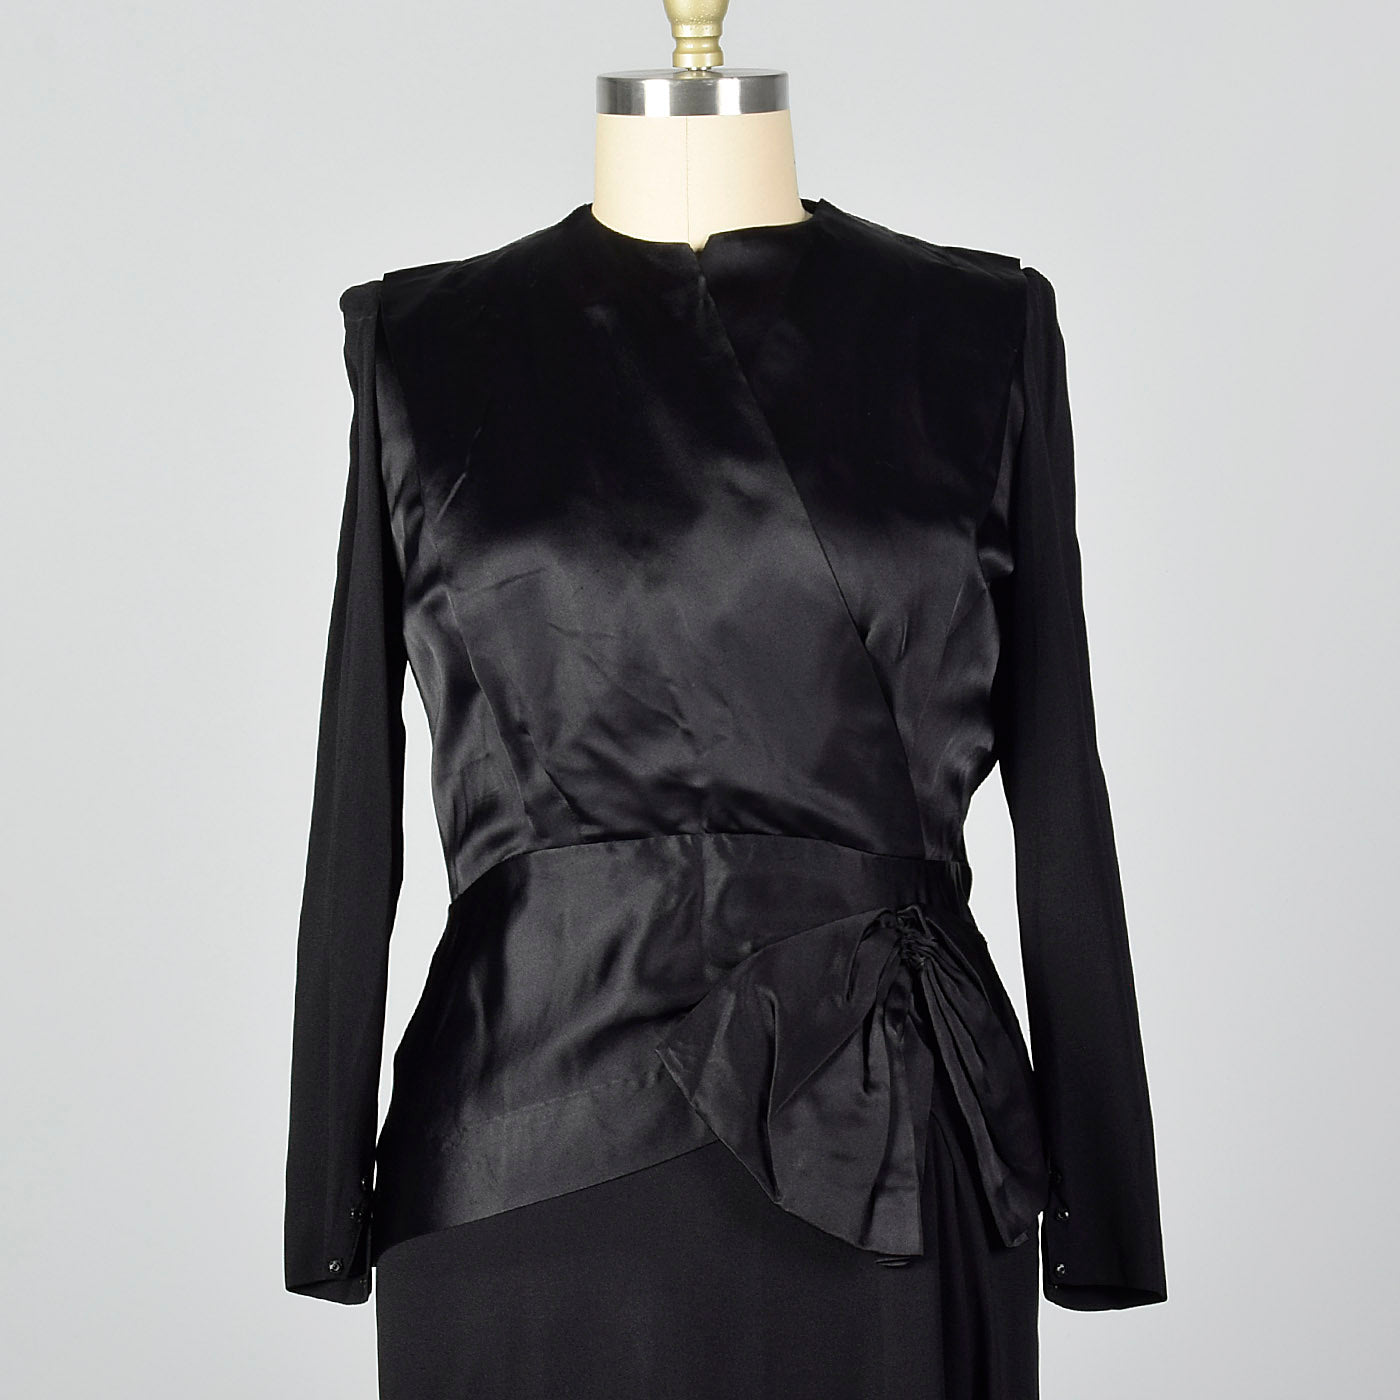 1940s Black Cocktail Dress with Satin Bodice